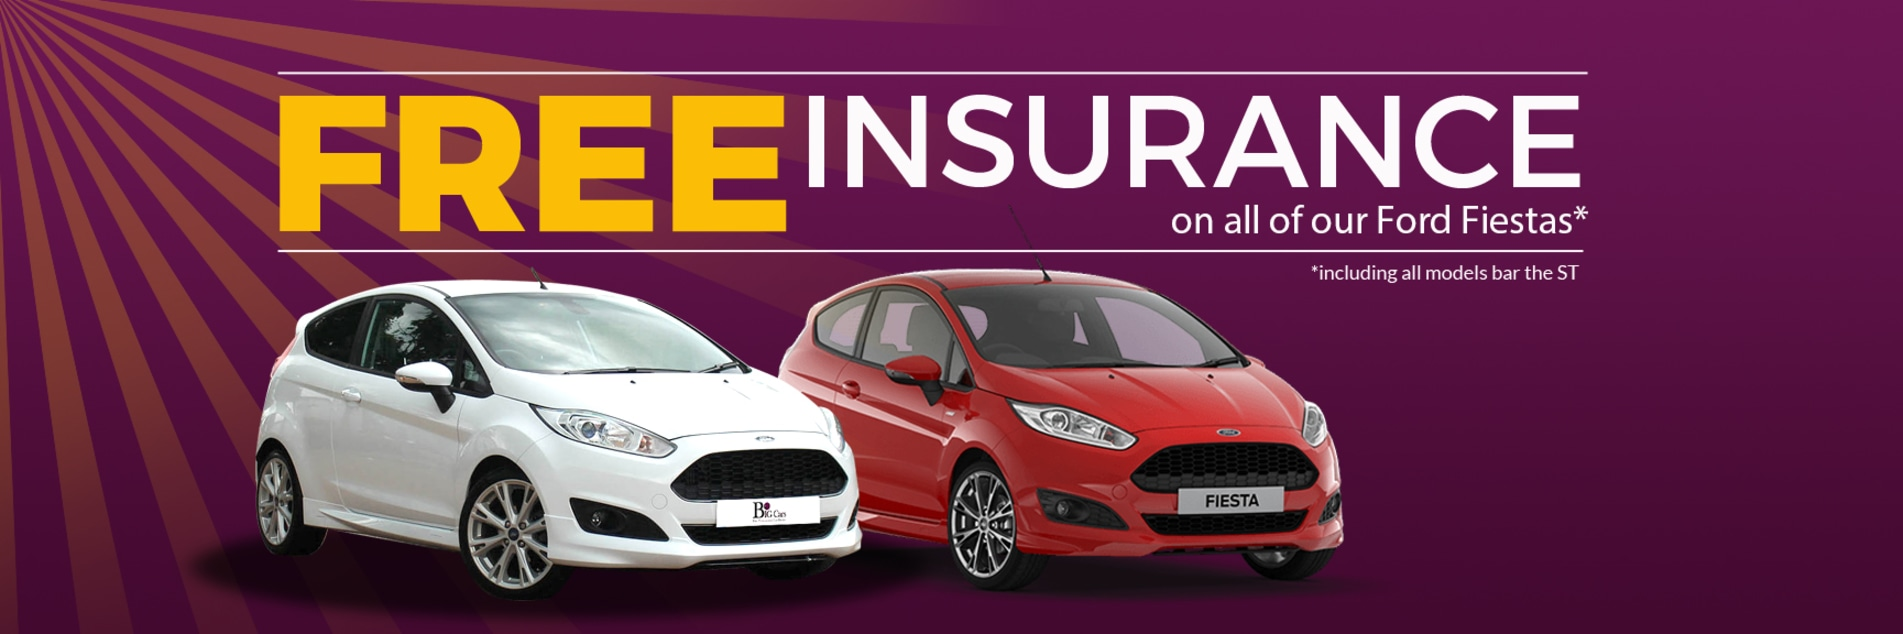 Ford Fiesta With Free Insurance